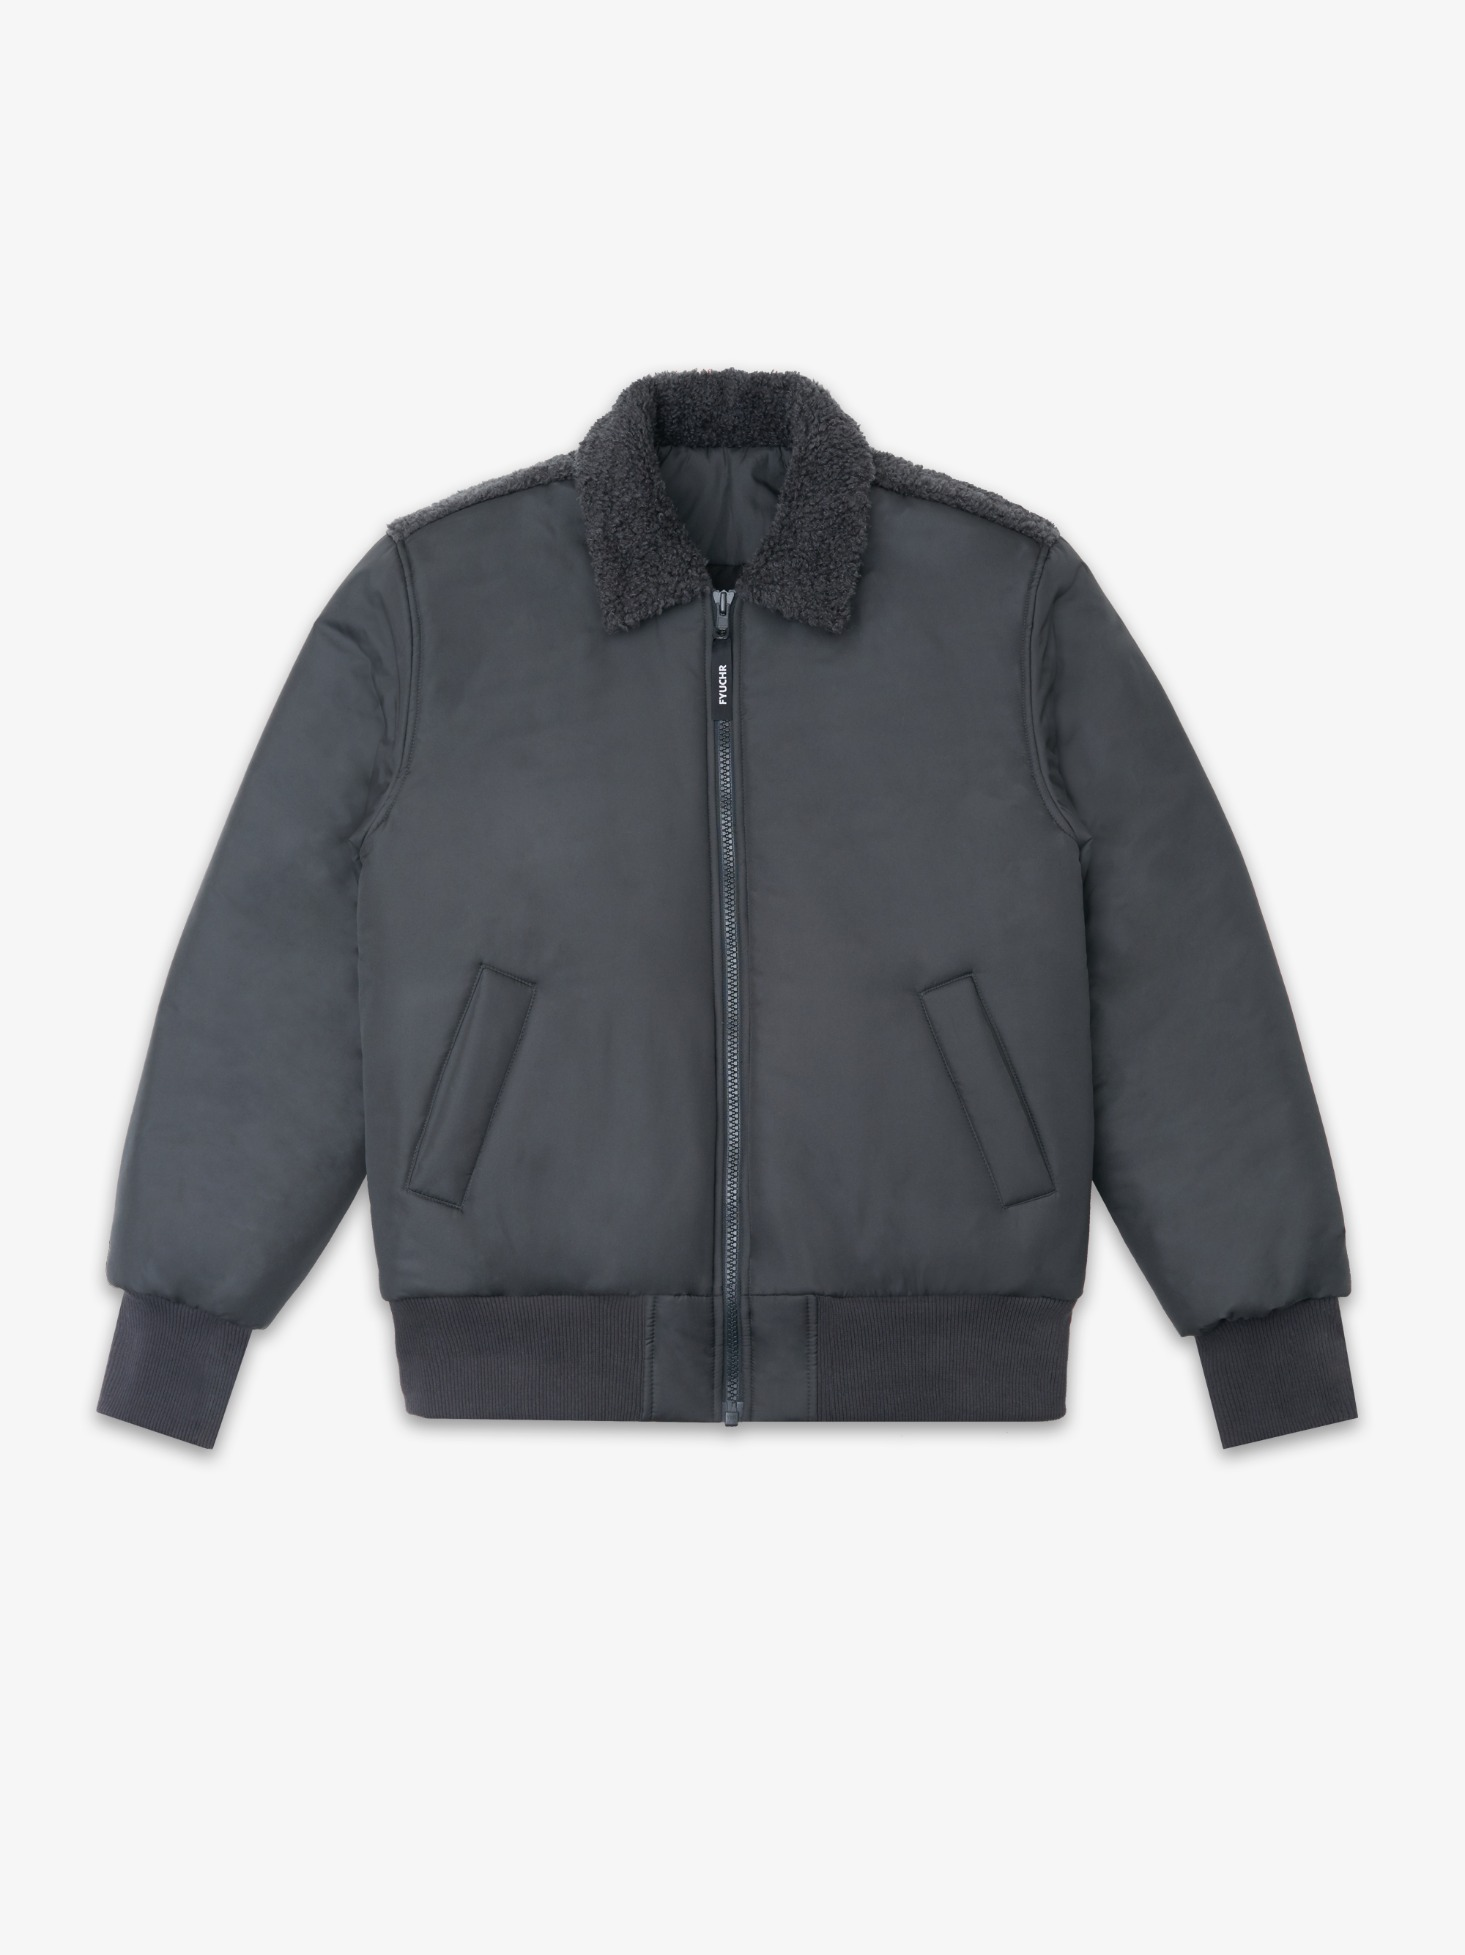 LAMBS WOOL A2 BOMBER